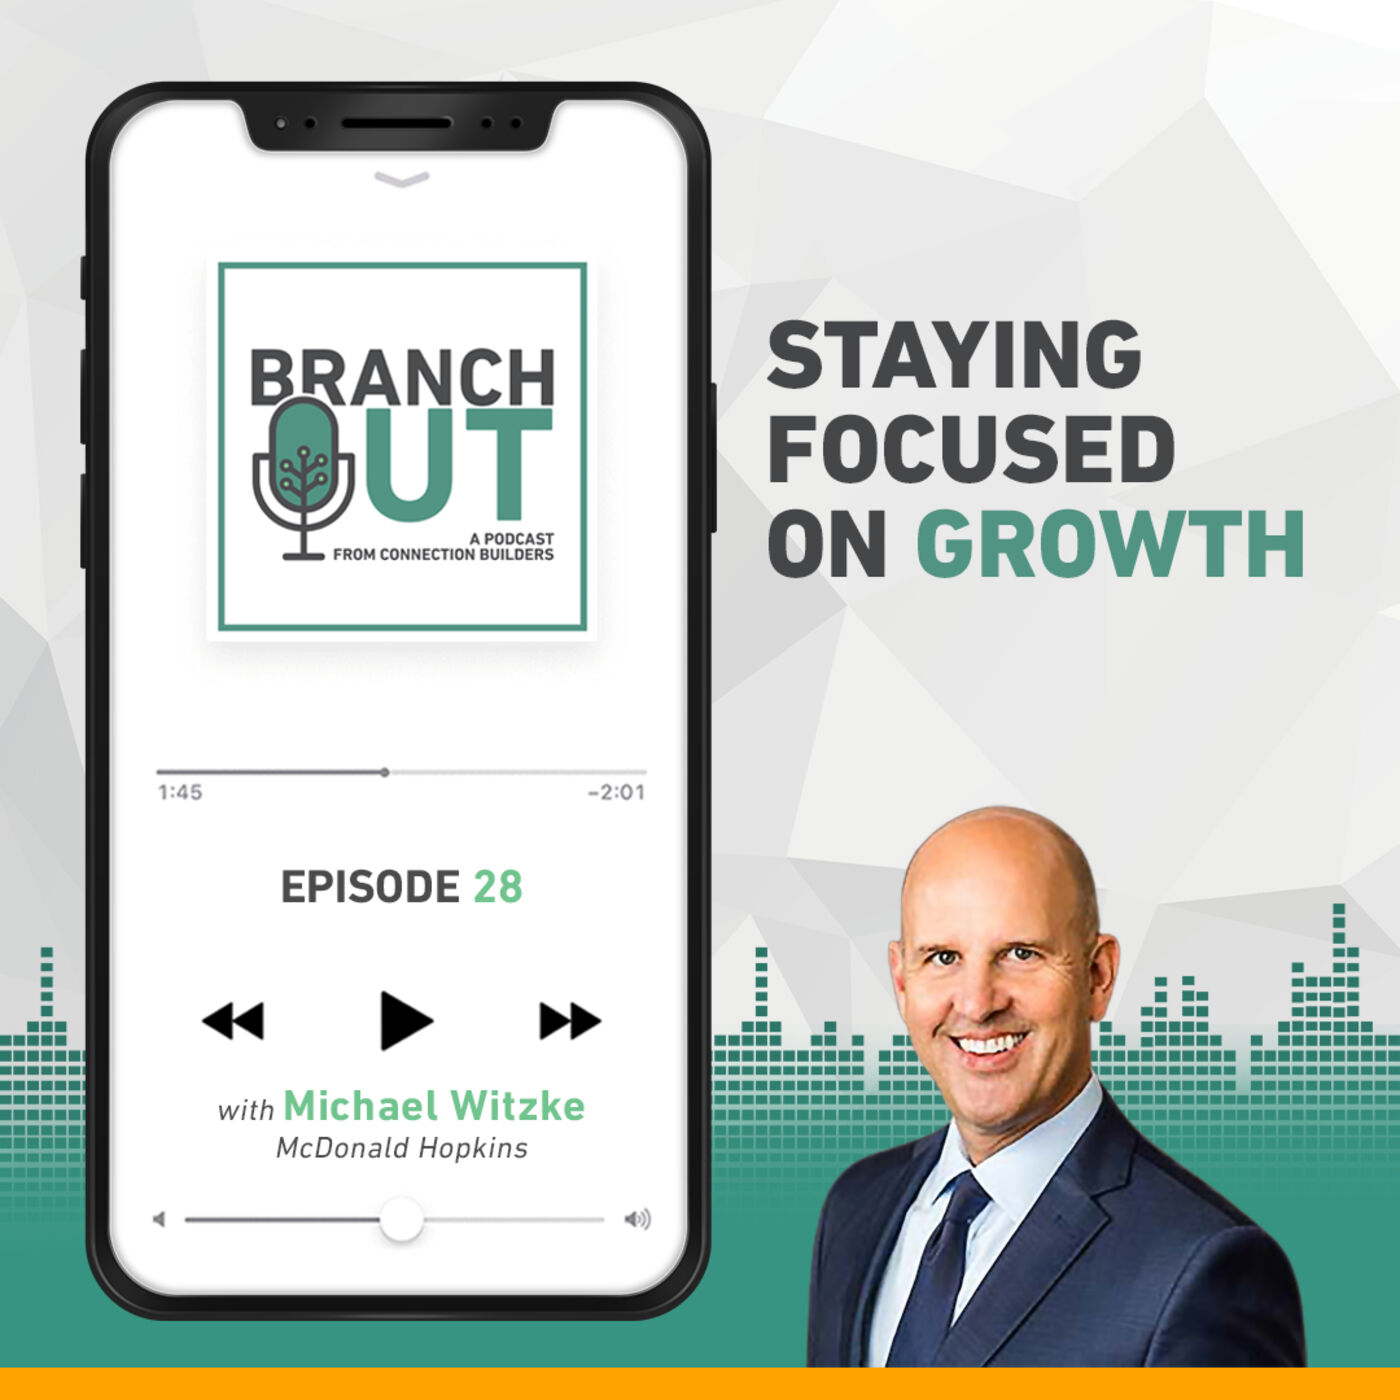 Staying Focused On Growth - Mike Witzke